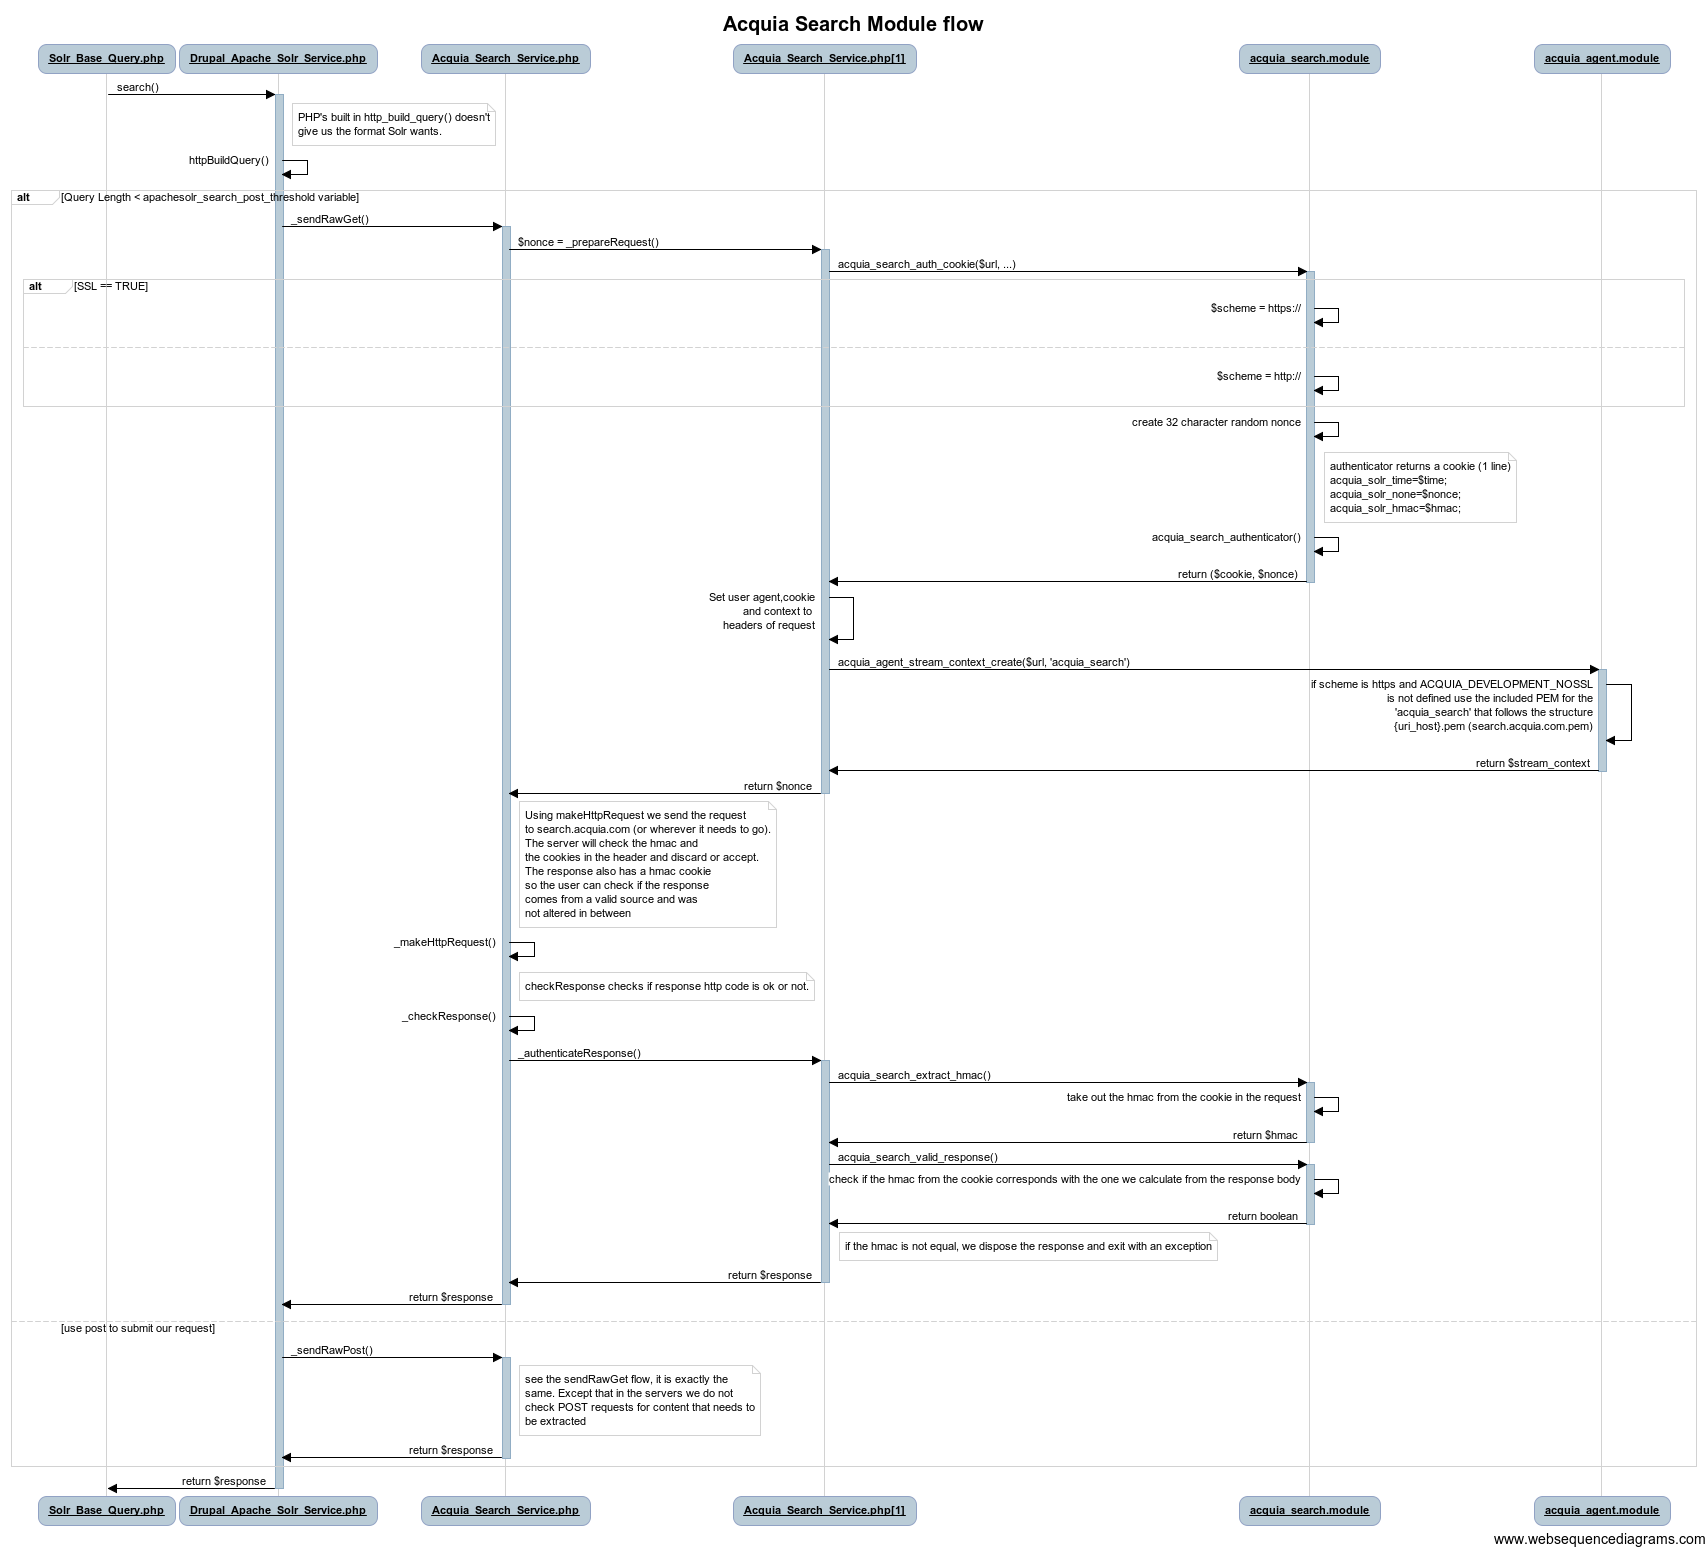 Sequence diagram flow diagram drupal acquia search module flow 1g ccuart Image collections